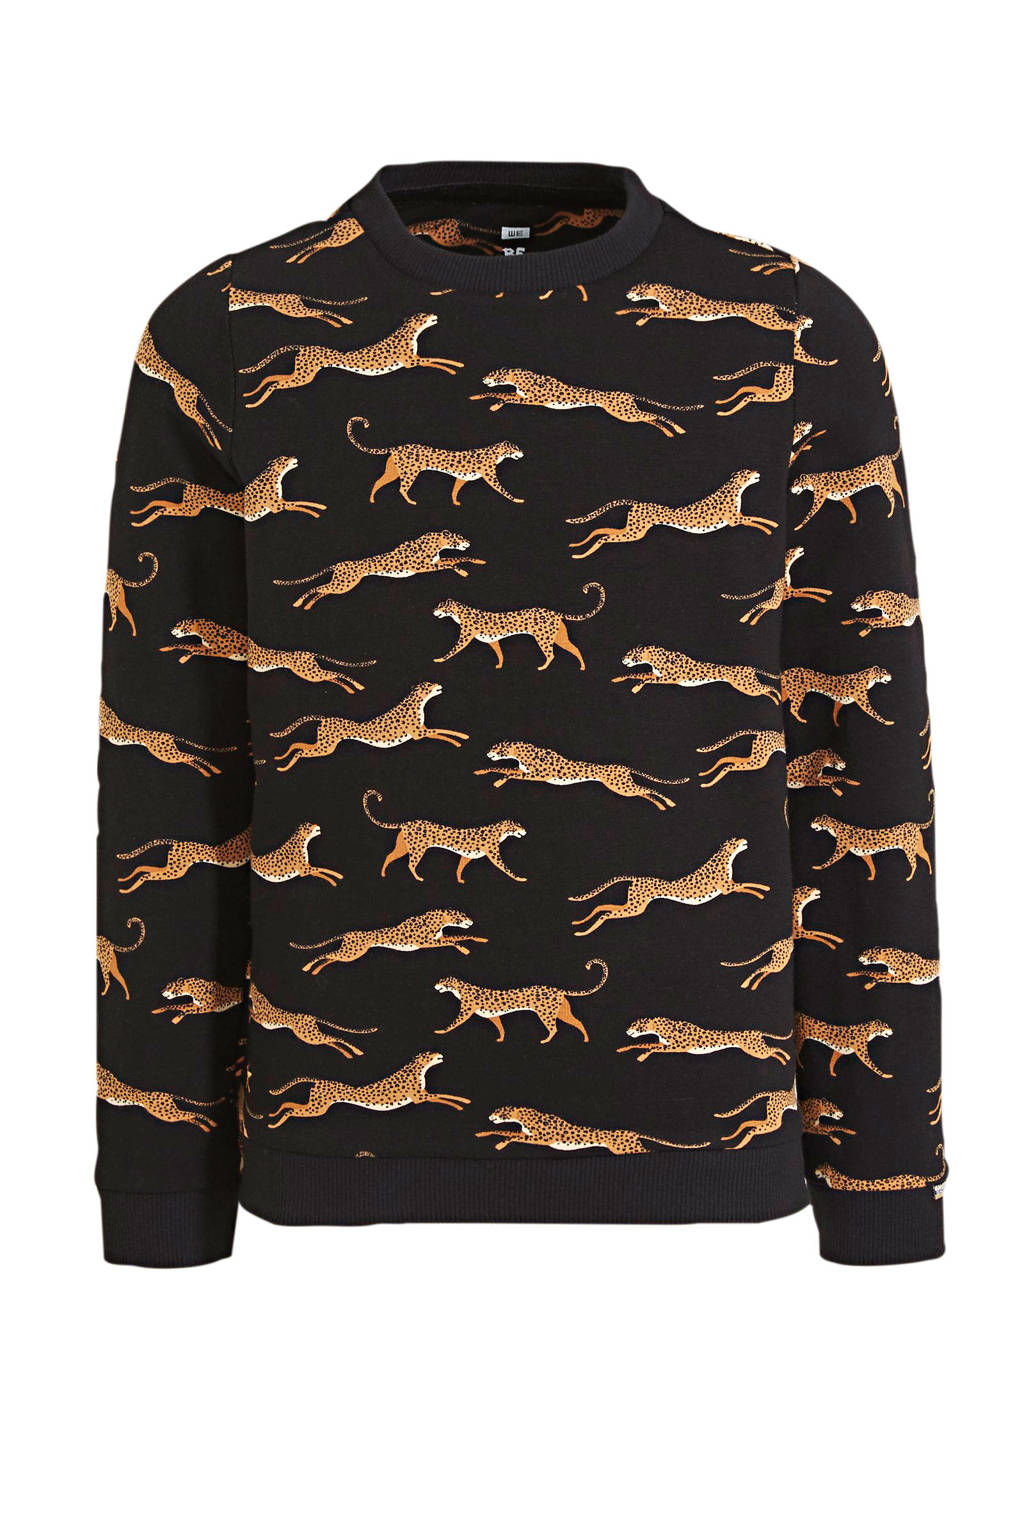 WE Fashion sweater met dierenprint zwart/bruin, Zwart/bruin